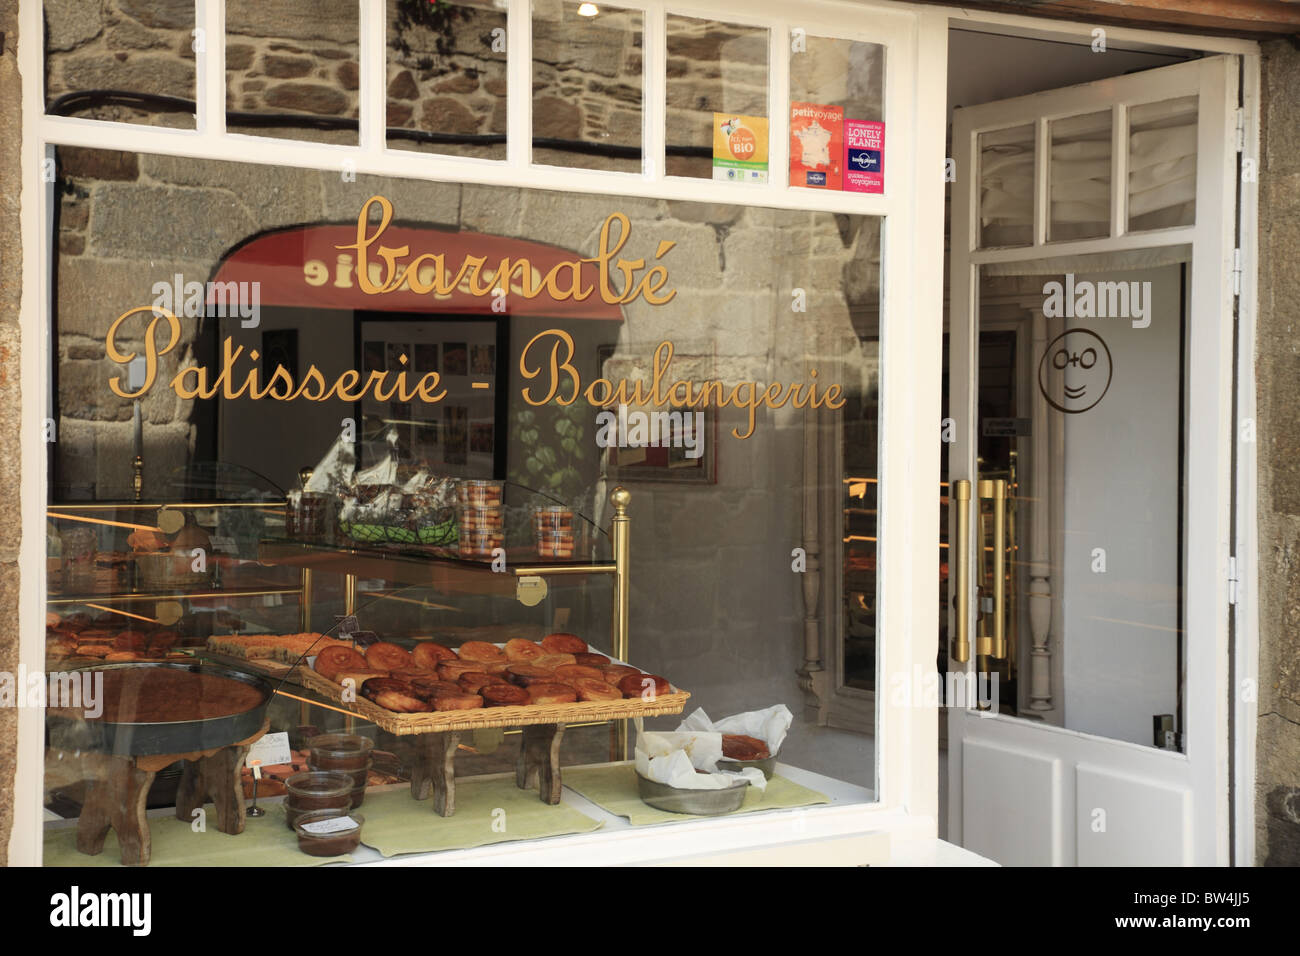 A French Patisserie shop window in the town of Dinan, Brittany, France. - Stock Image